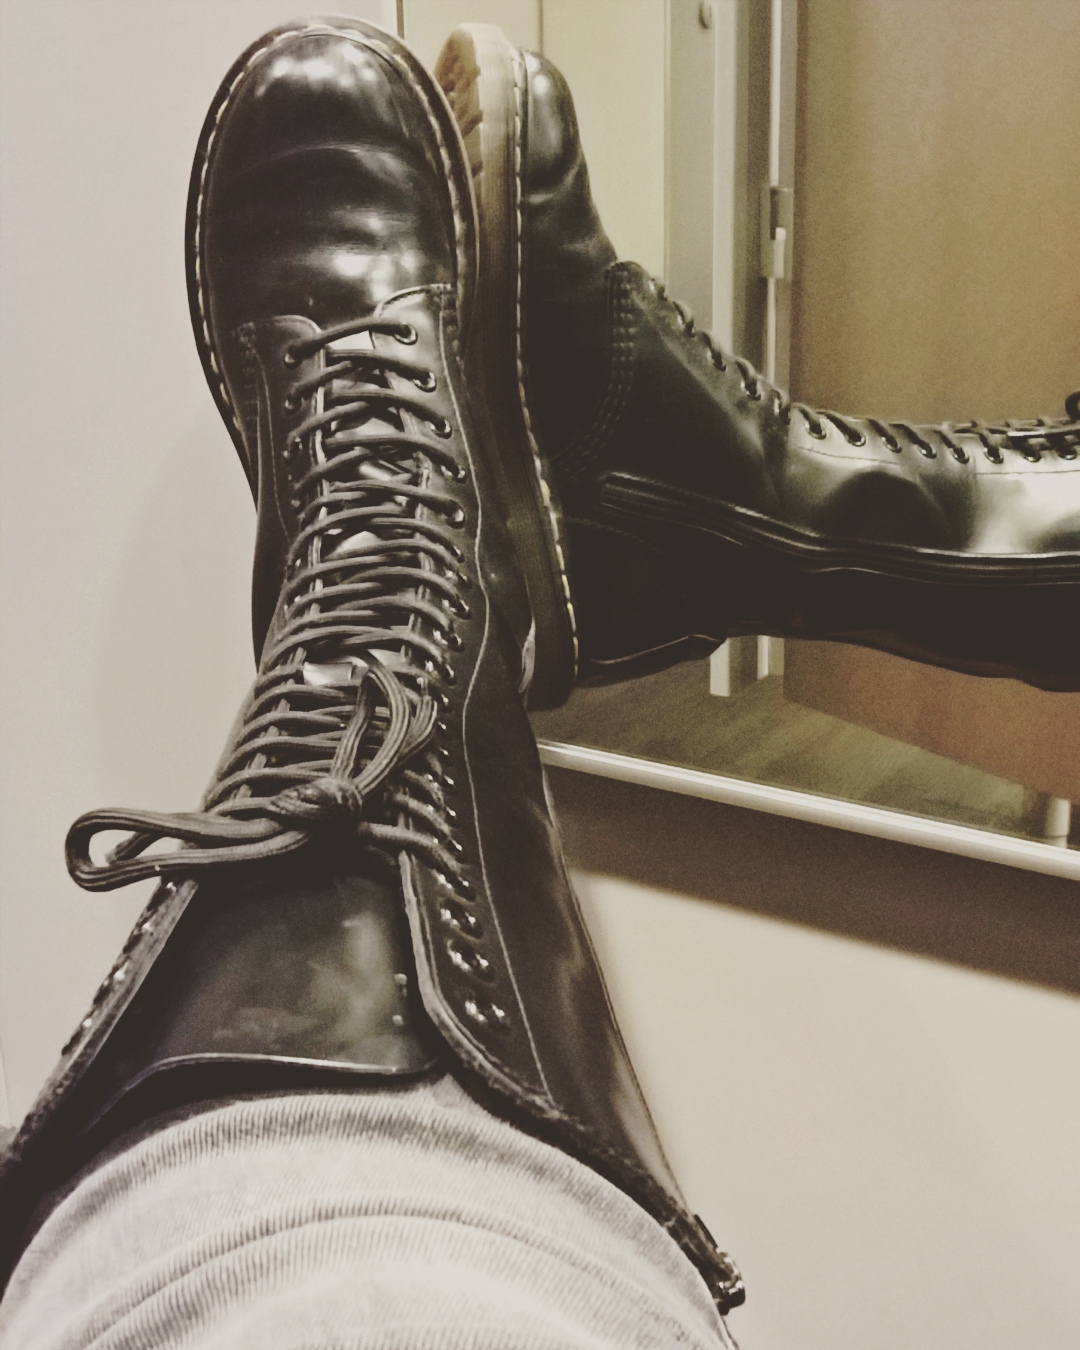 Caring for Dr Martens